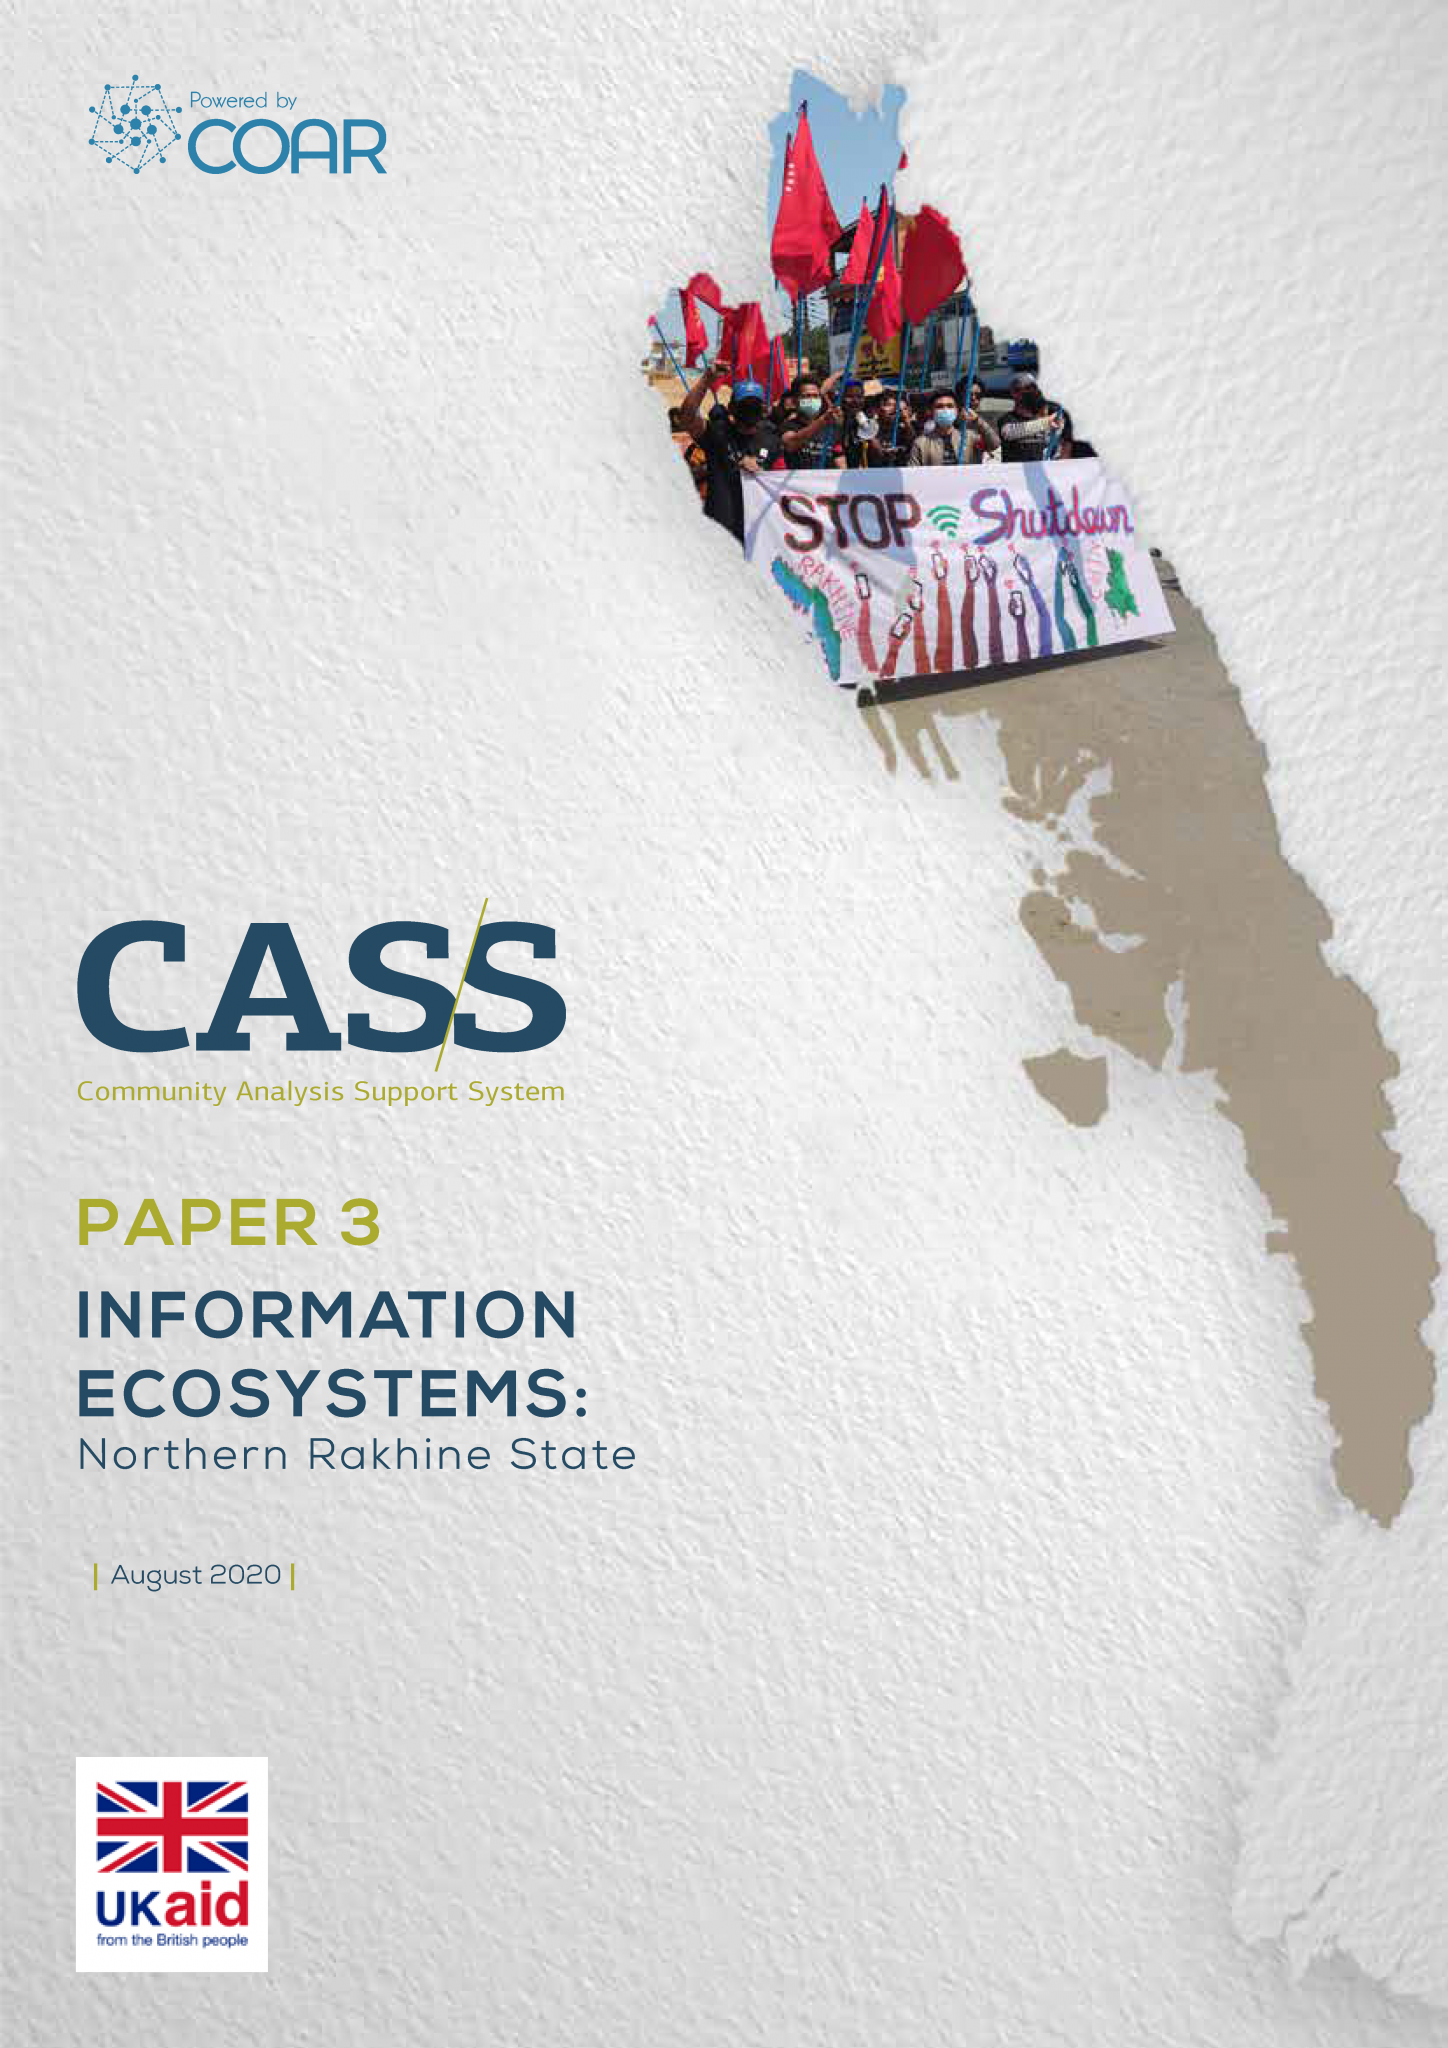 Paper 3: Information Ecosystems in Northern Rakhine State